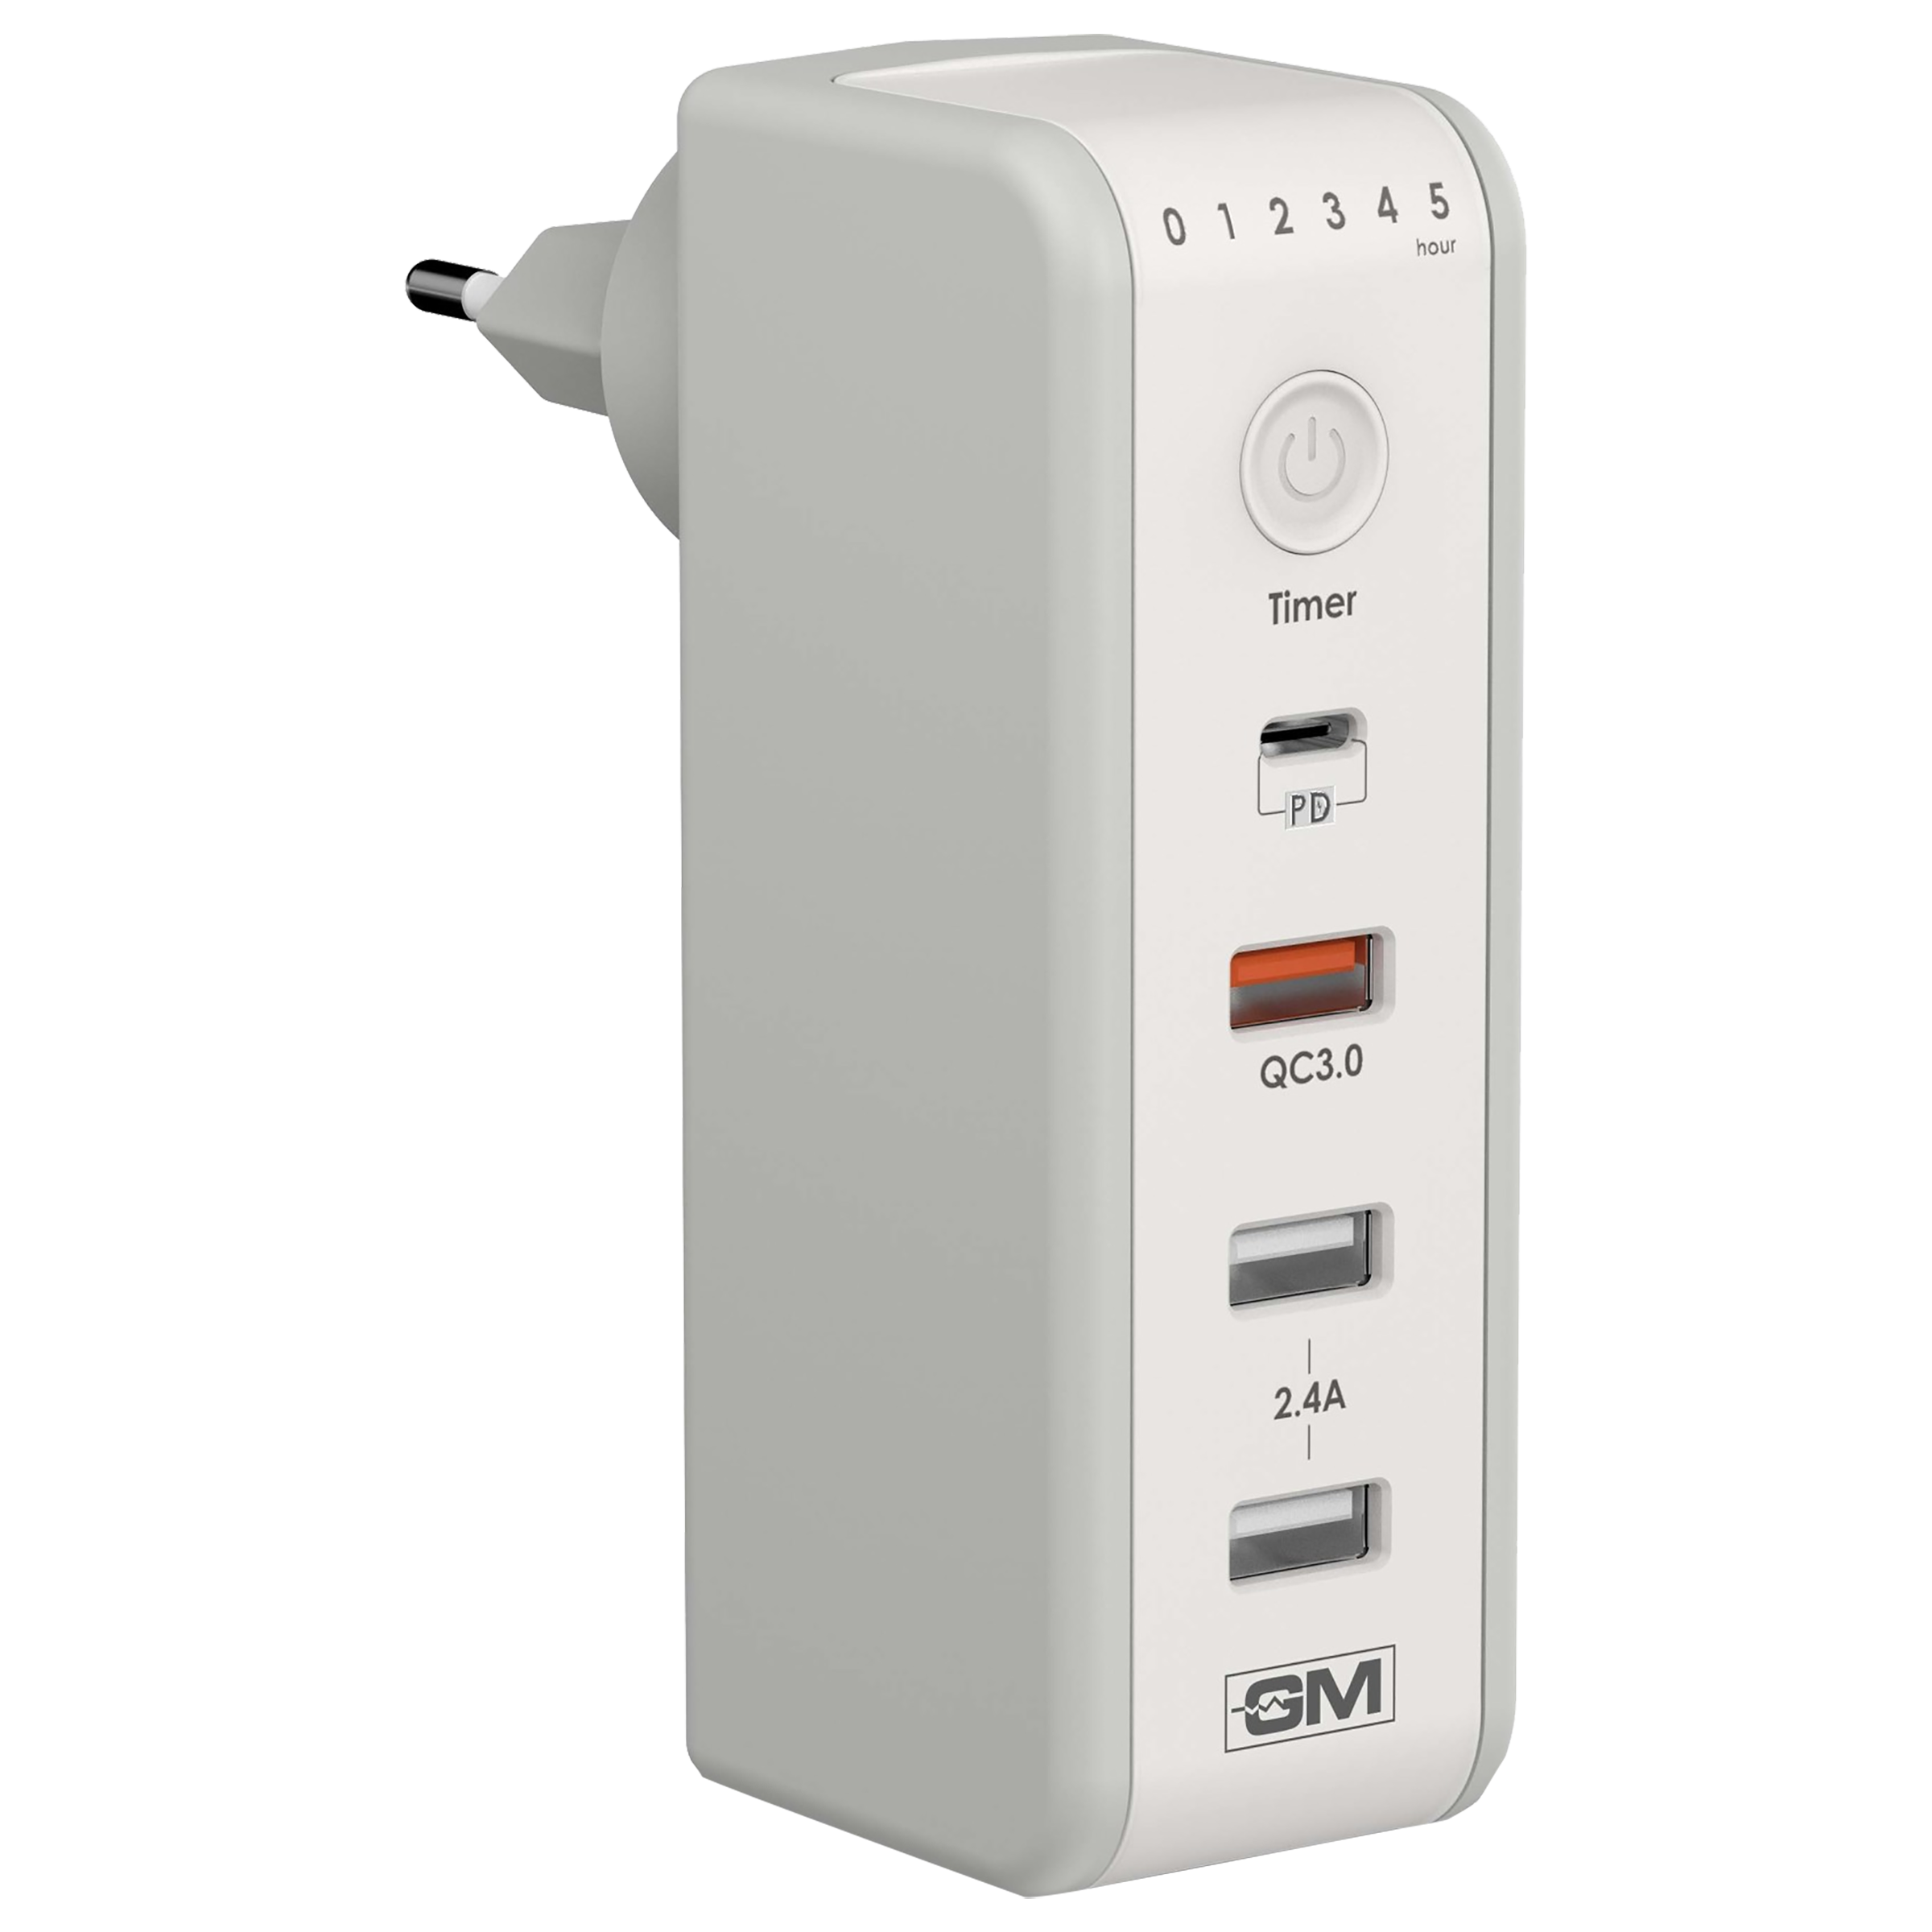 GM CUBA 18 Watts 3 Amps 4 Port USB PD Type C/USB QC 3.0/USB 2.0 (Type A) Wall Charging Adapter (Fast Charge, GM 3263, White)_1